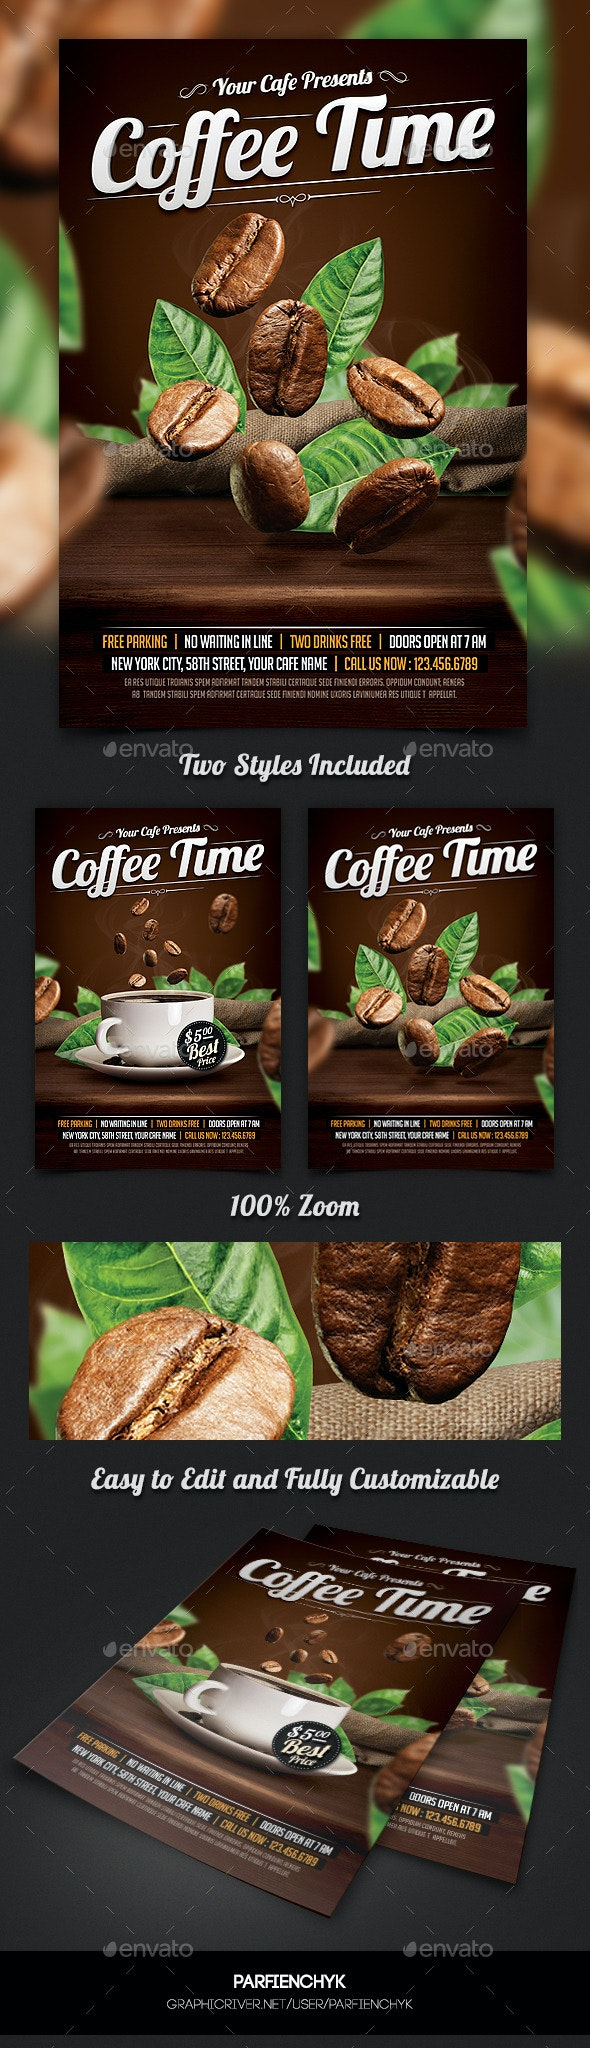 Coffee Time Flyer Template - Restaurant Flyers